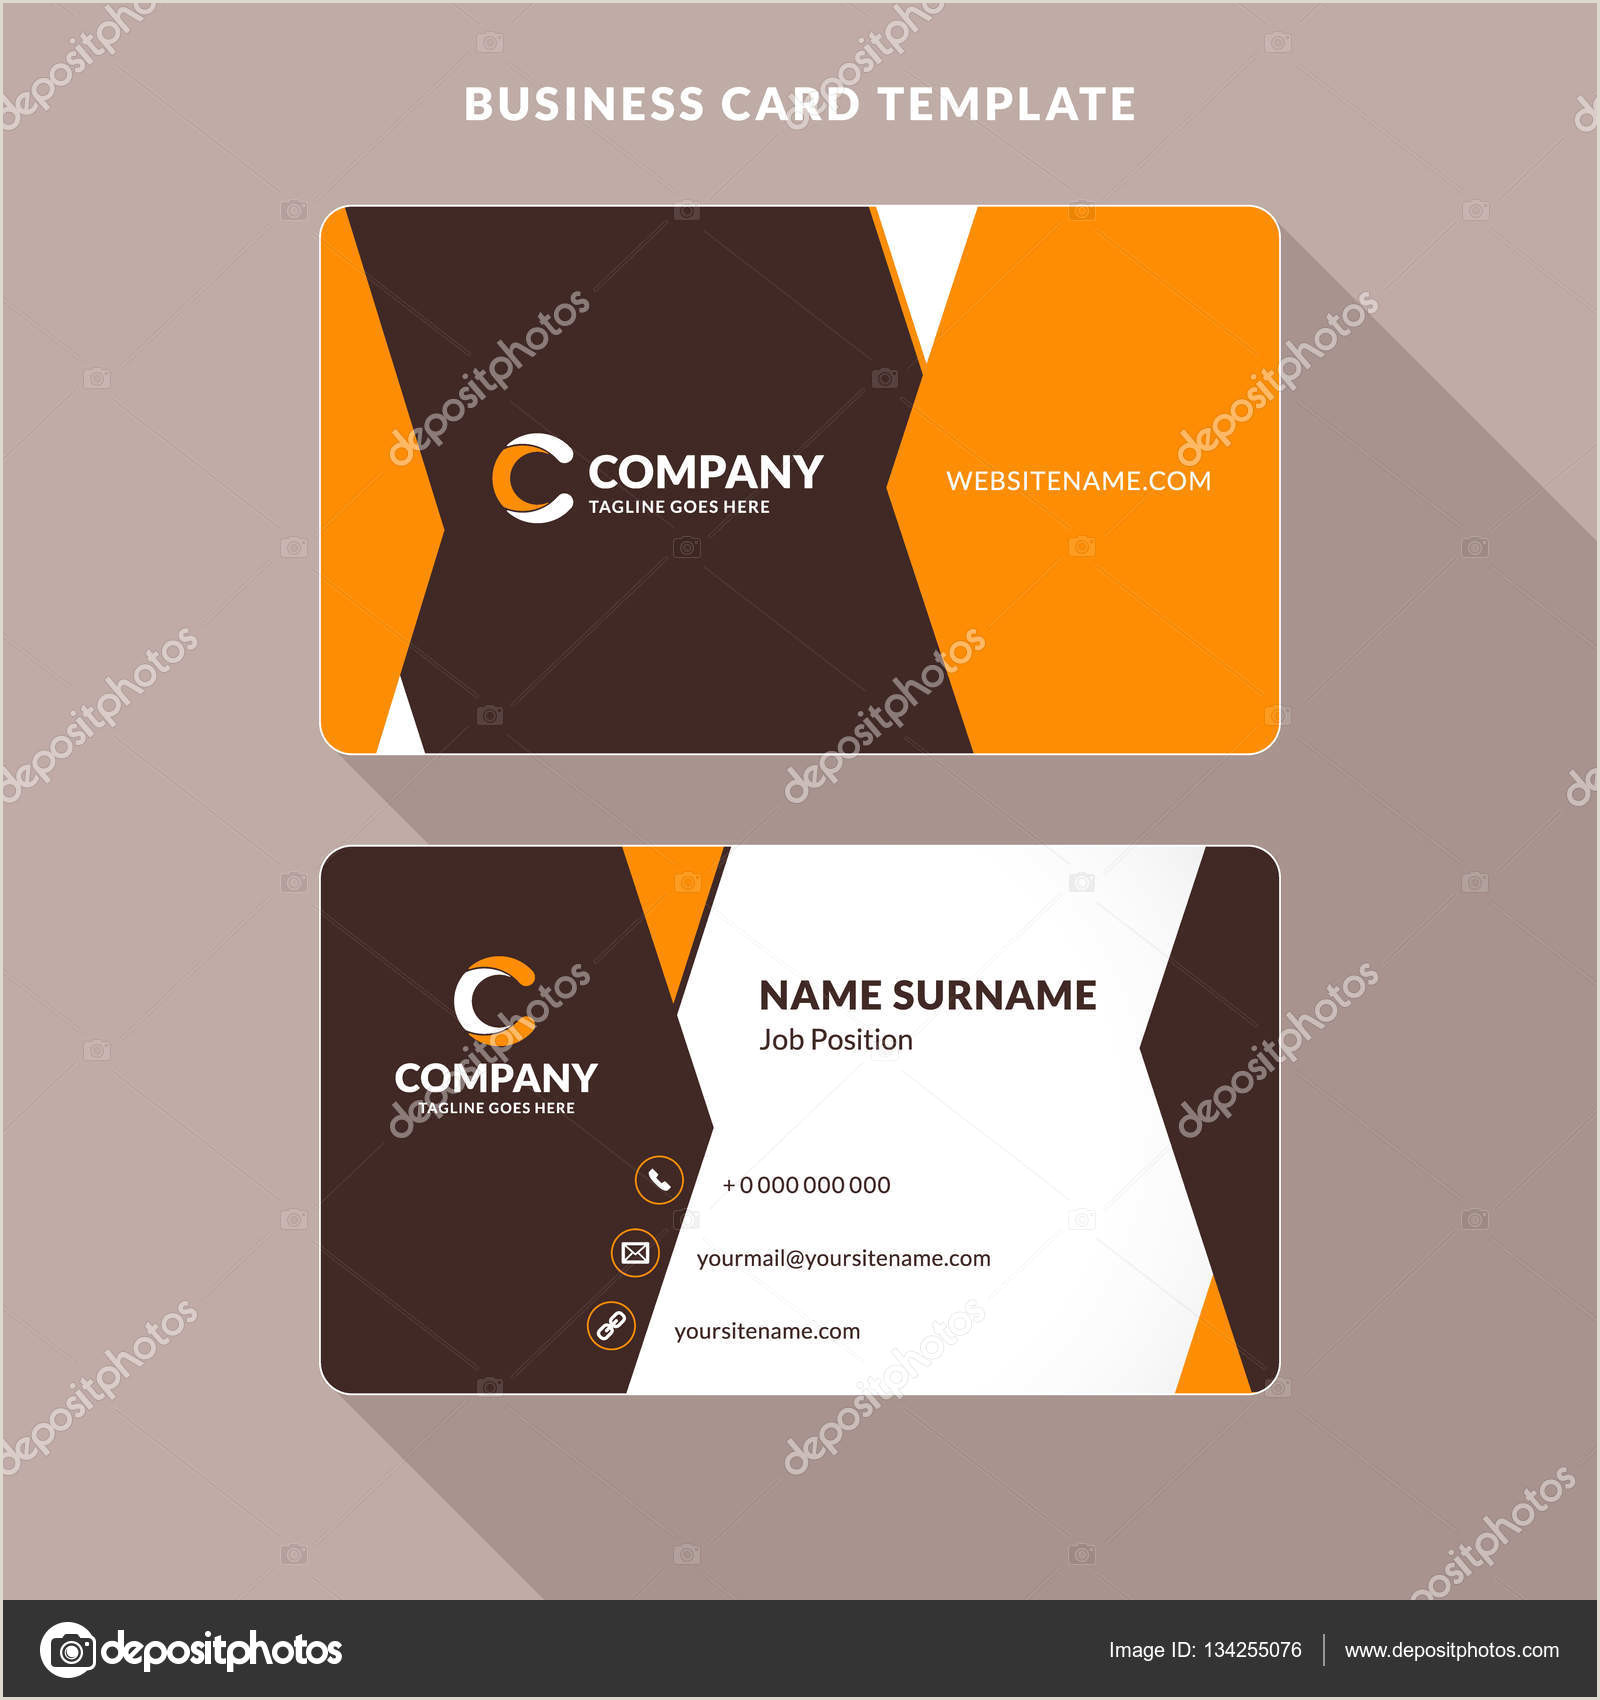 Business Cards Multiple Images Creative And Clean Double Sided Business Card Template Orange And Brown Colors Flat Design Vector Illustration Stationery Design